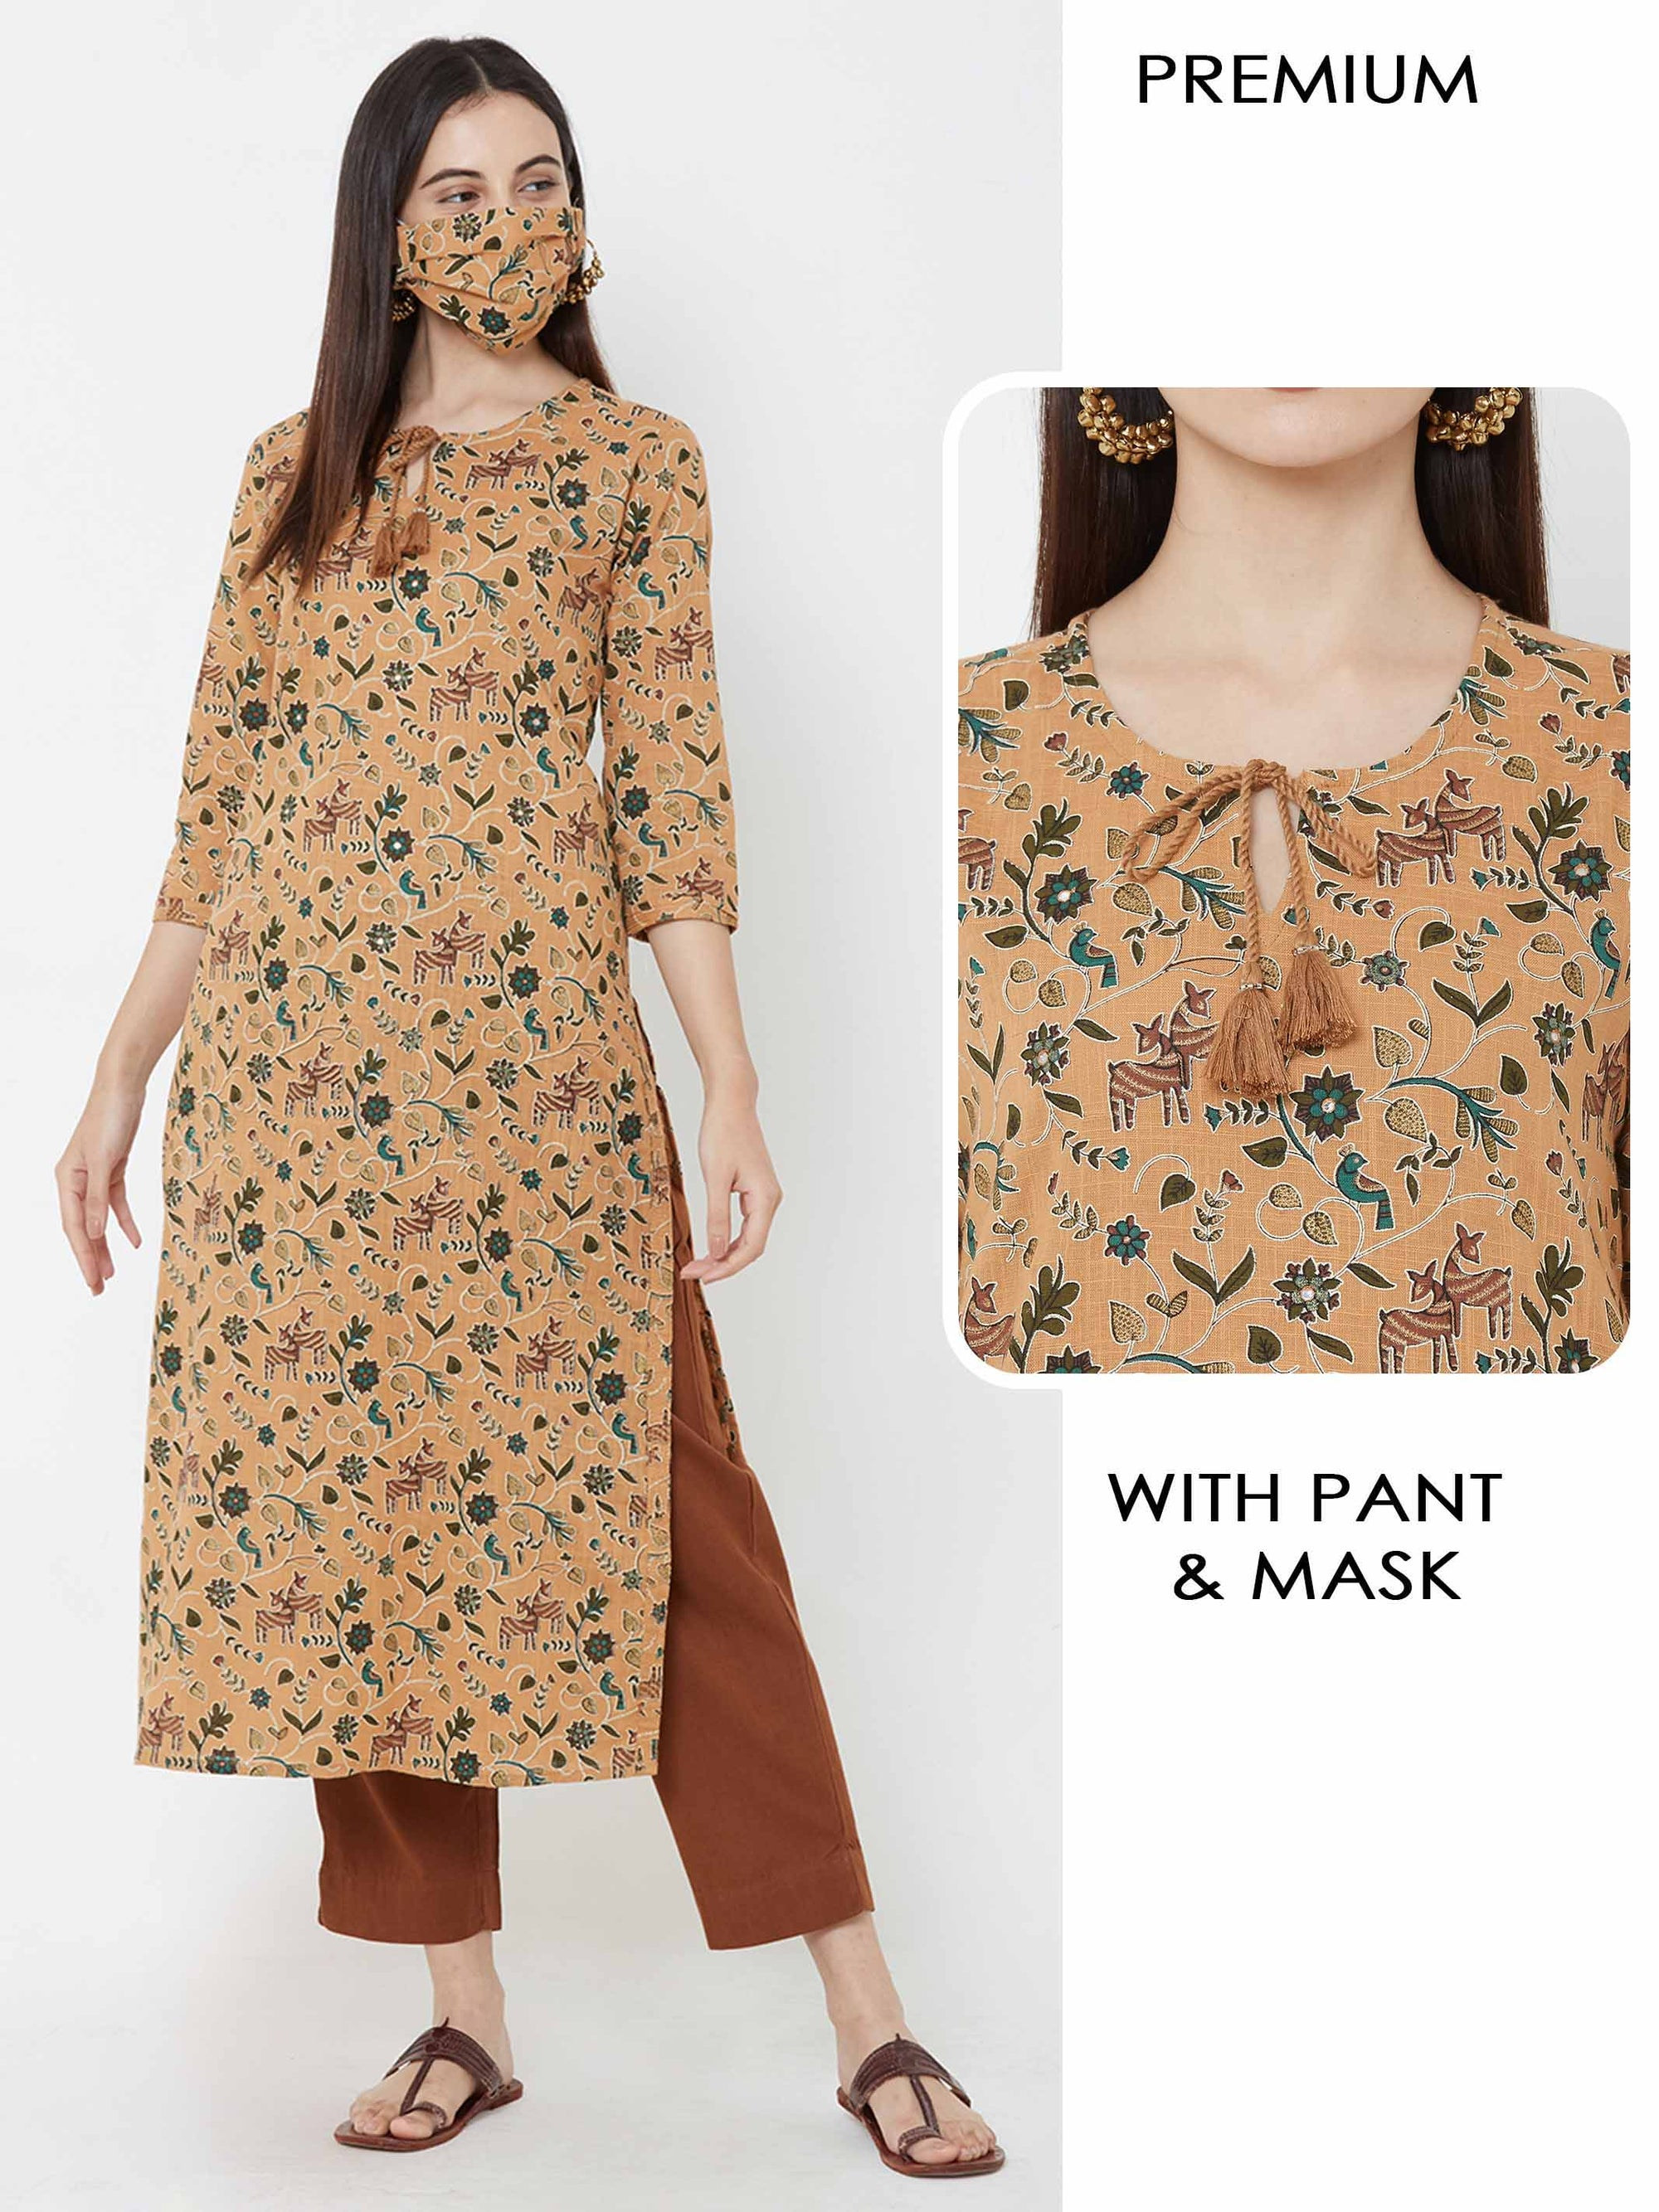 Deer & birds printed  Kurta with solid Pant & mask – Rust